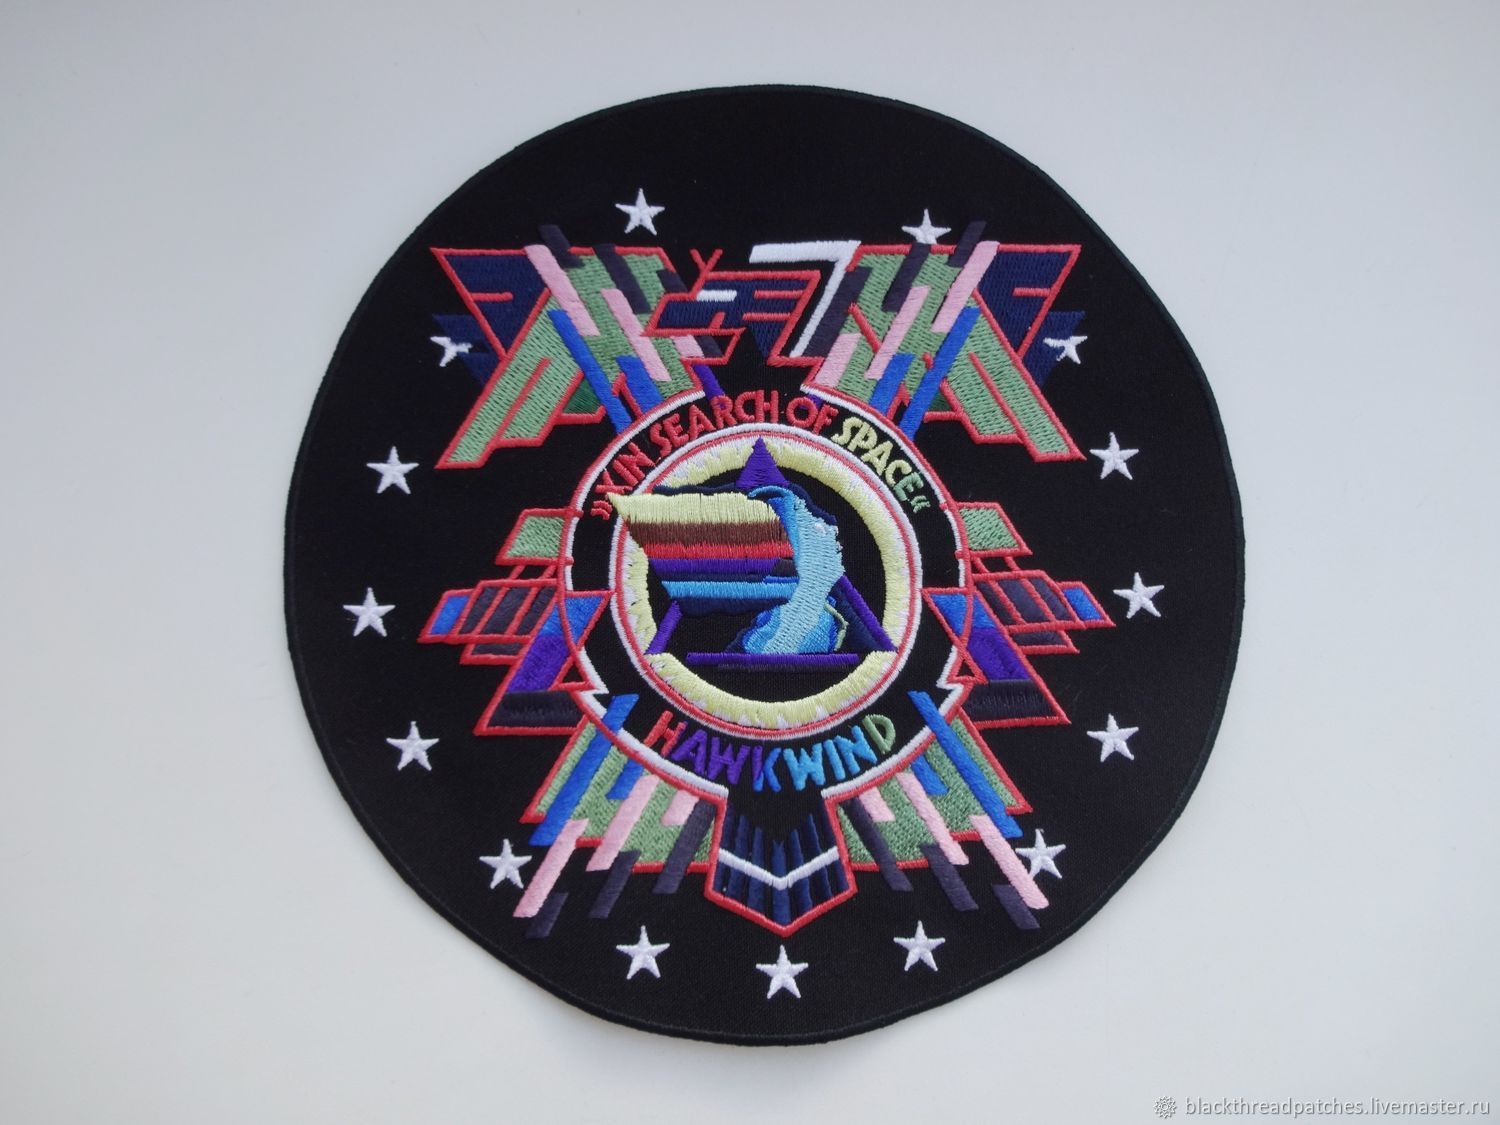 Hawkwind - In Search Of Space - backpatch, Patches, St. Petersburg,  Фото №1